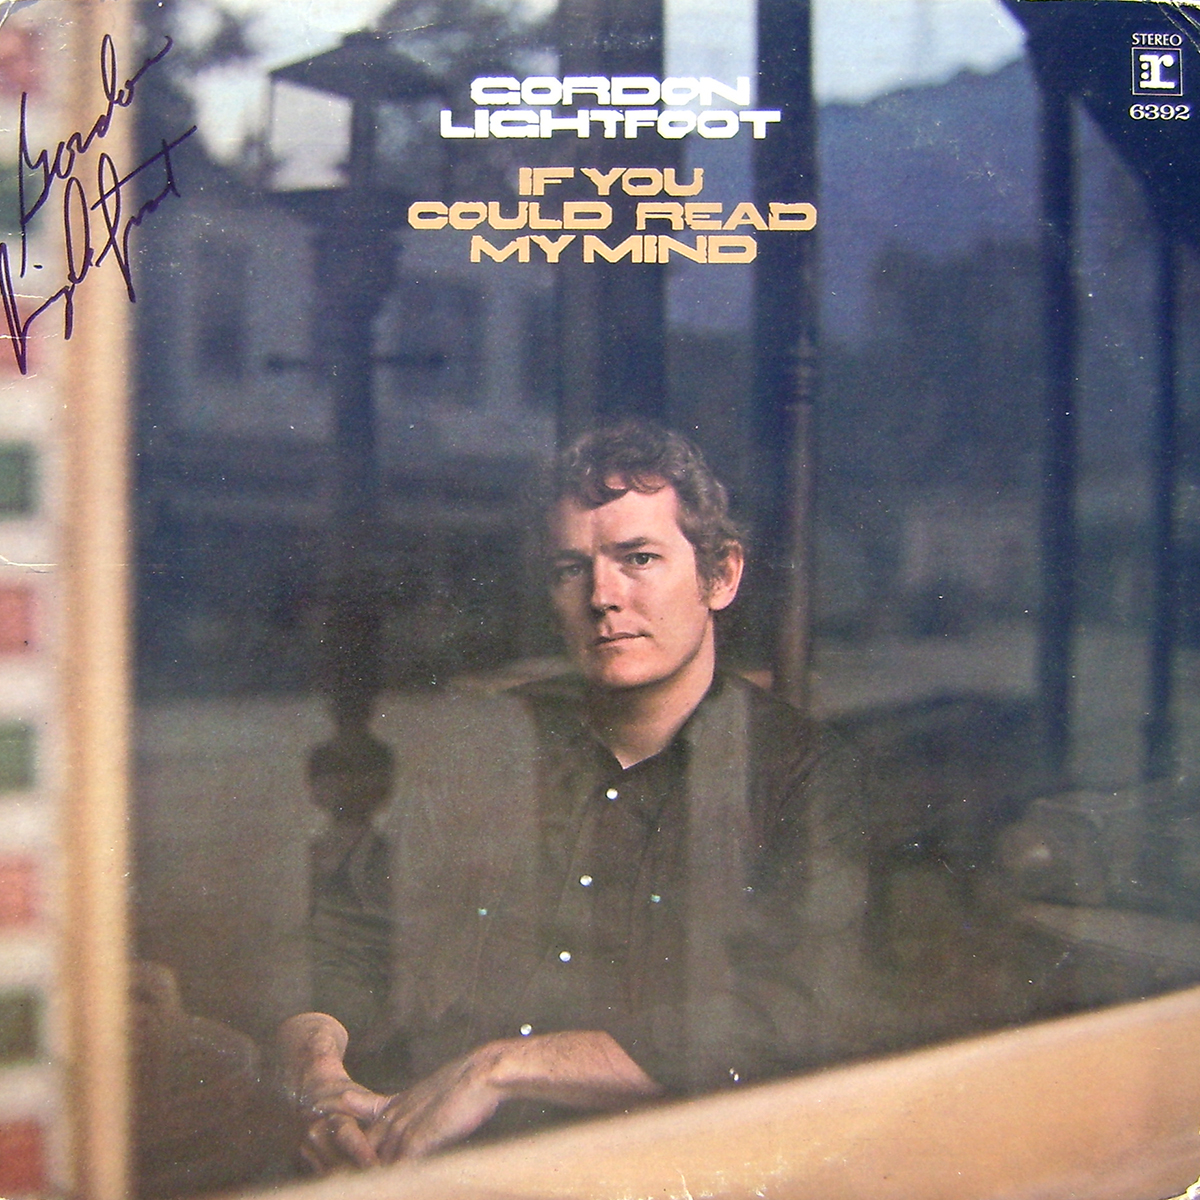 Gordon Lightfoot LP - If You Could Read My Mind